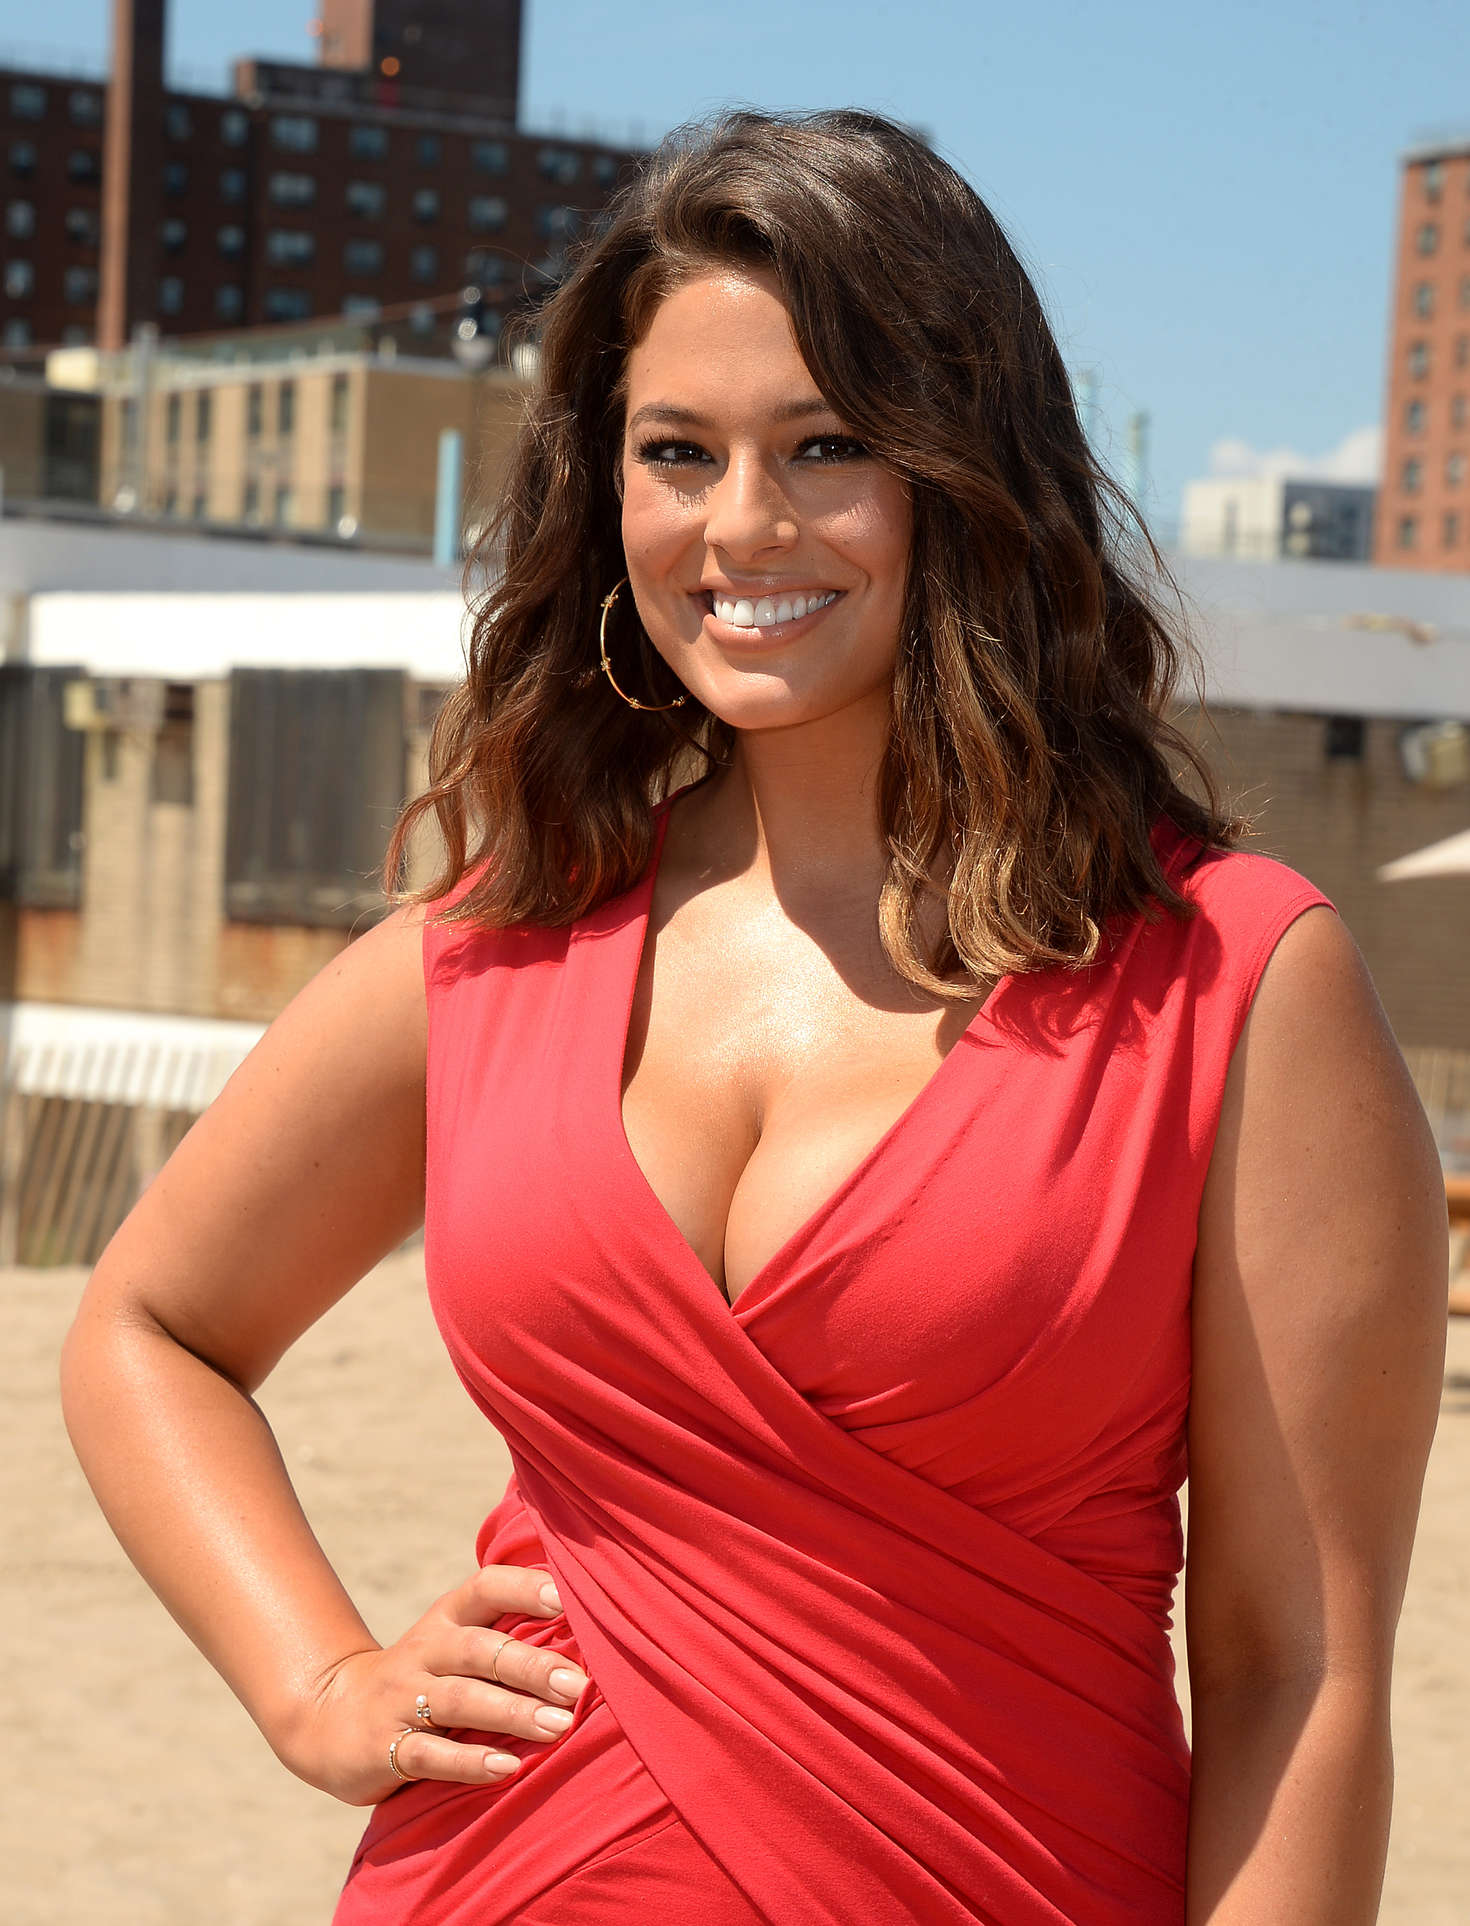 ashley graham - photo #38